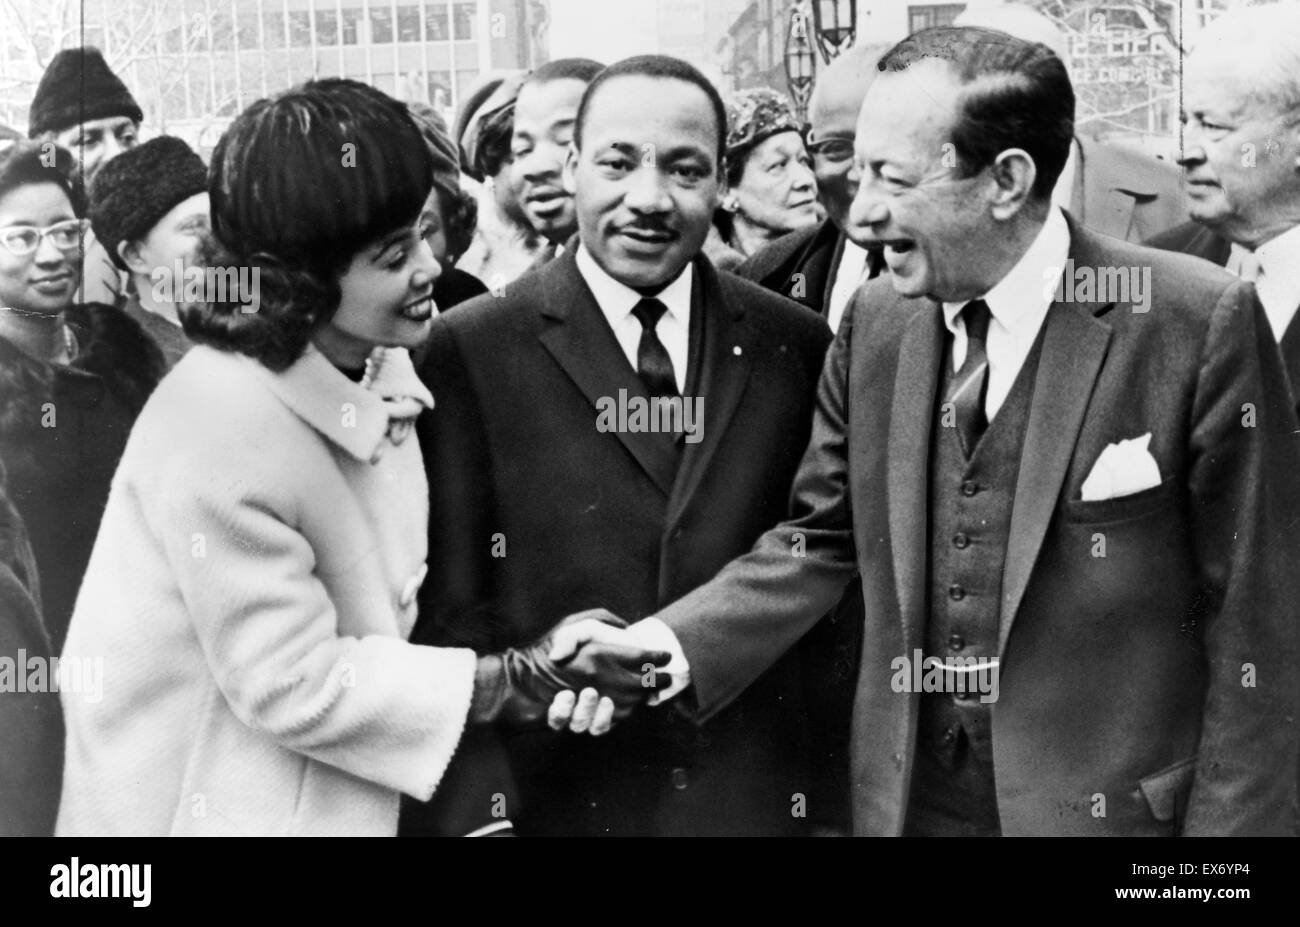 Mayor Wagner of New York greets Dr. and Mrs. Luther King, Jr. at City Hall 1964. Robert Ferdinand Wagner II (April 20, 1910 - February 12, 1964 Stock Photo